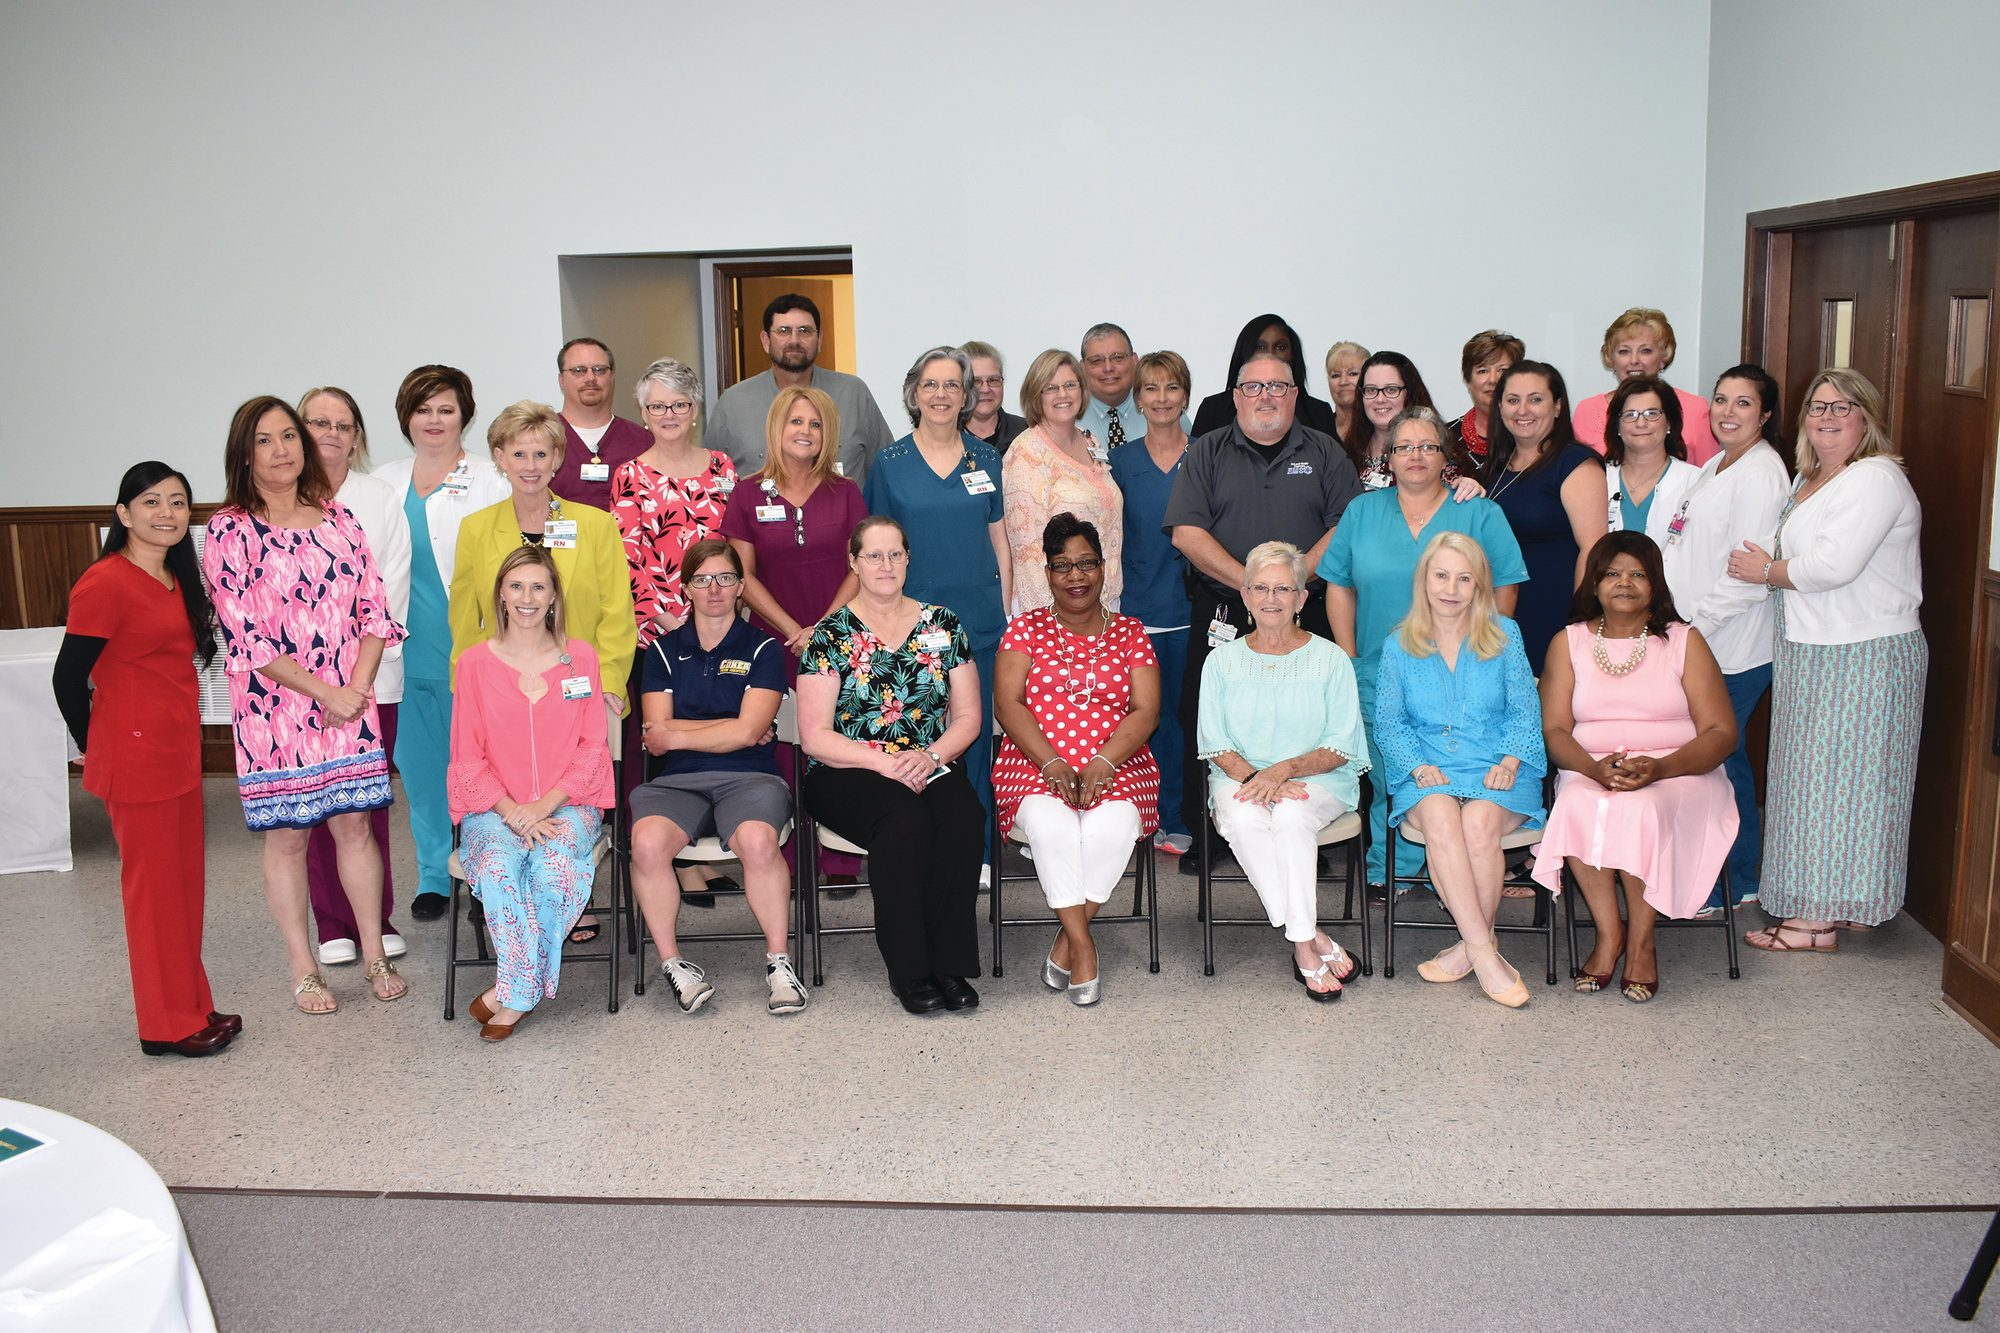 McLeod Health Clarendon employees were recognized at a recent Service Awards Luncheon.